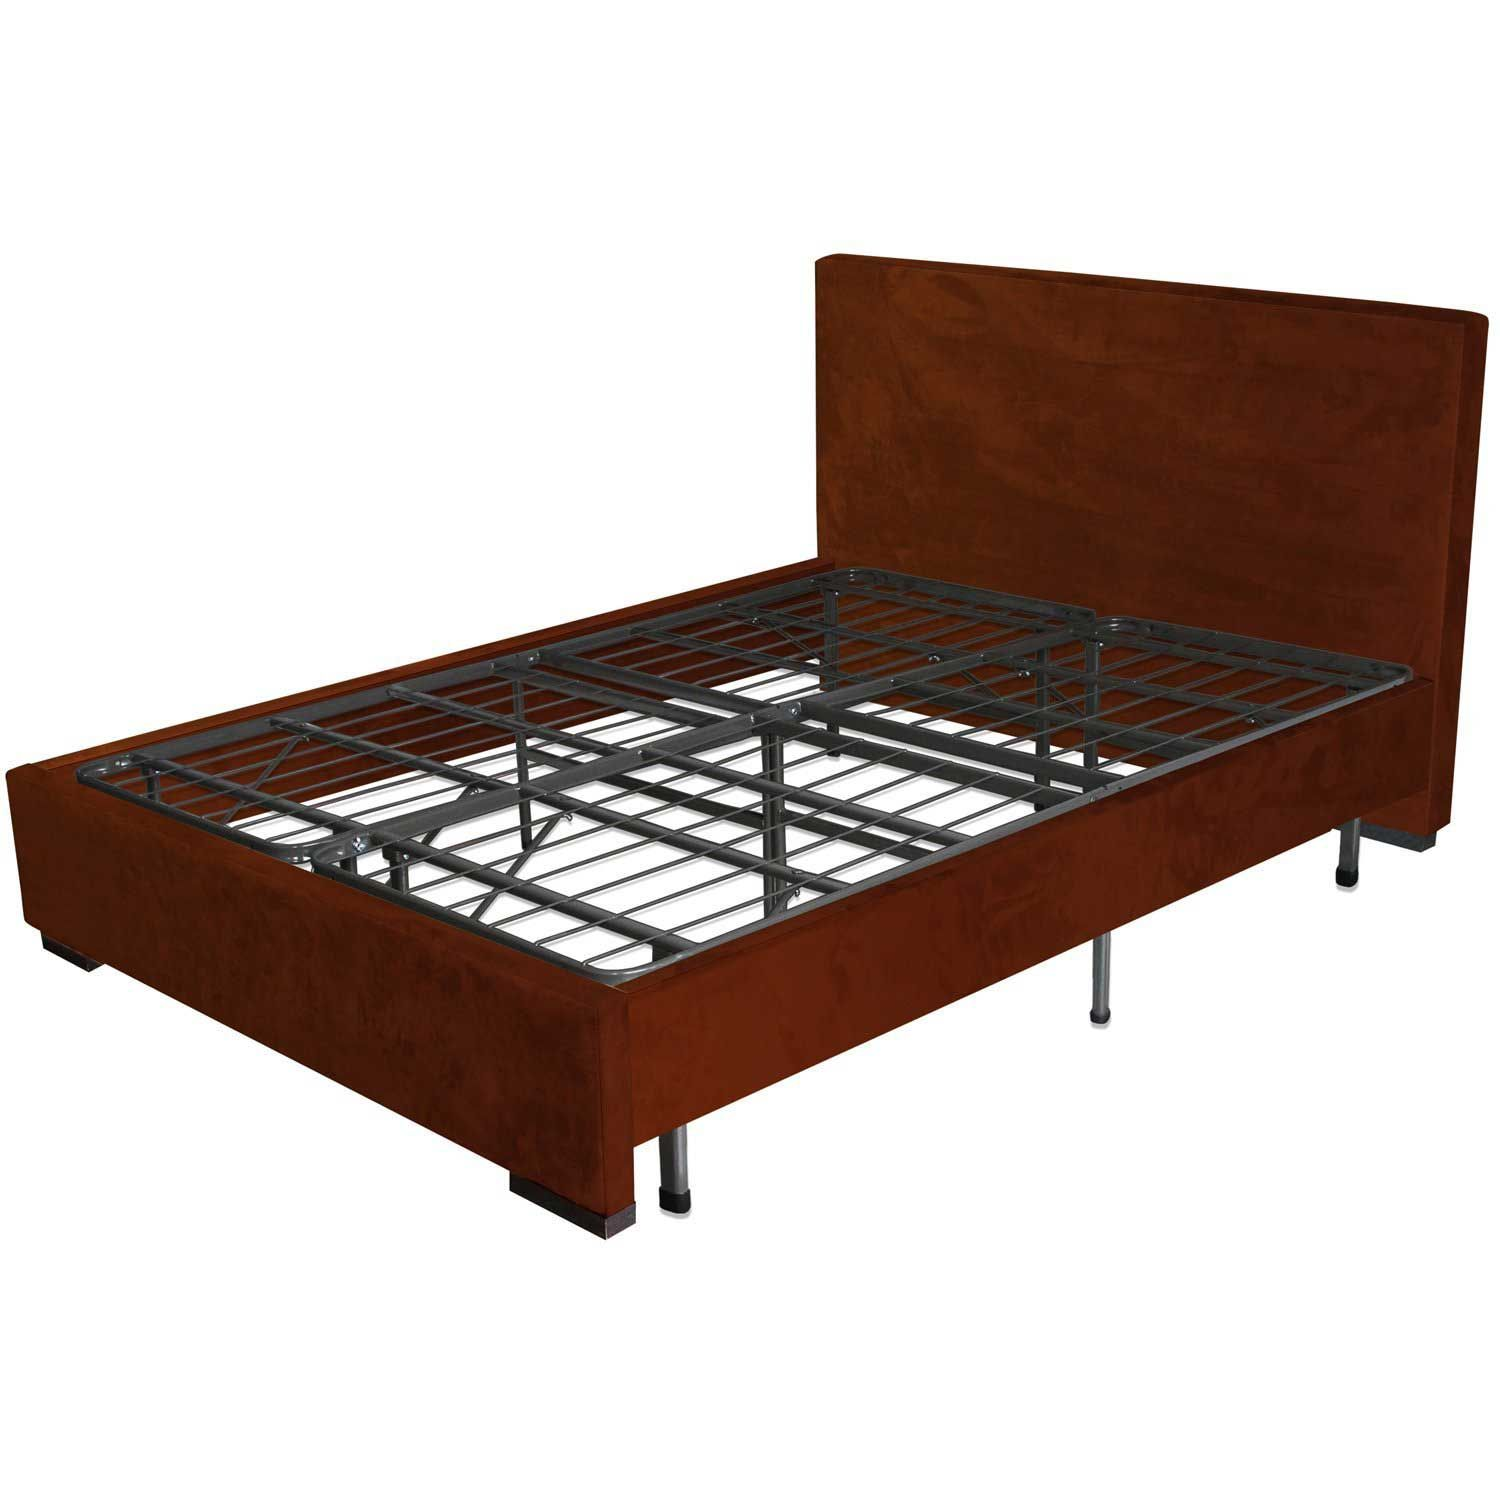 The Sleep Master Queen Metal Platform Bed Frame With Discount Reviews Bed Frame And Headboard Bed Frame With Storage Queen Size Bed Frames